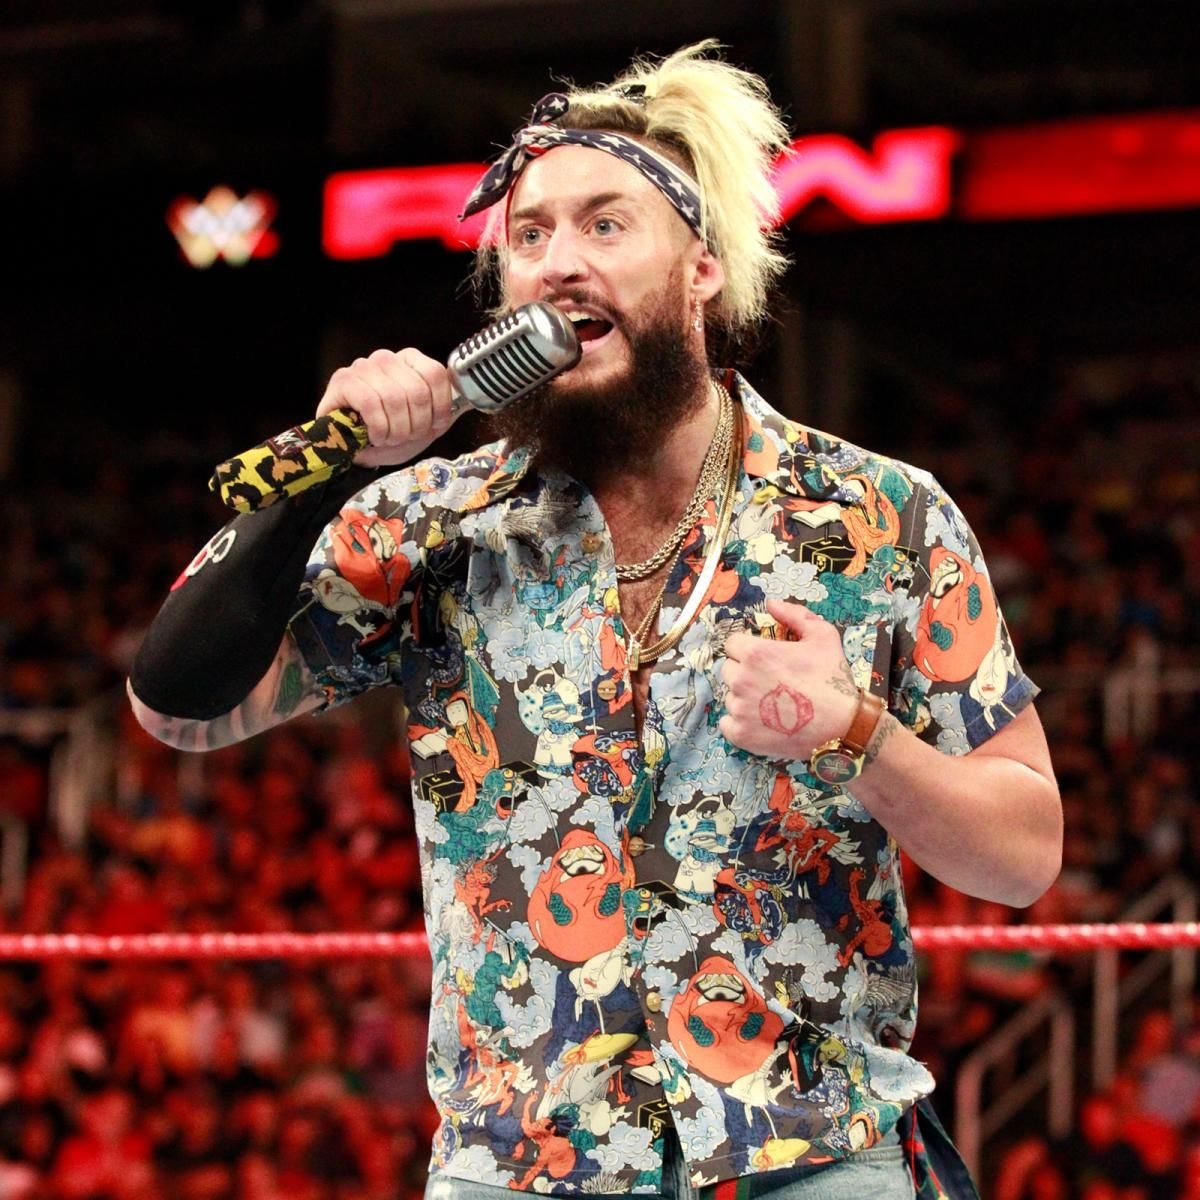 enzo says cass is nothing more than a seven foot catch phrase that enzo created